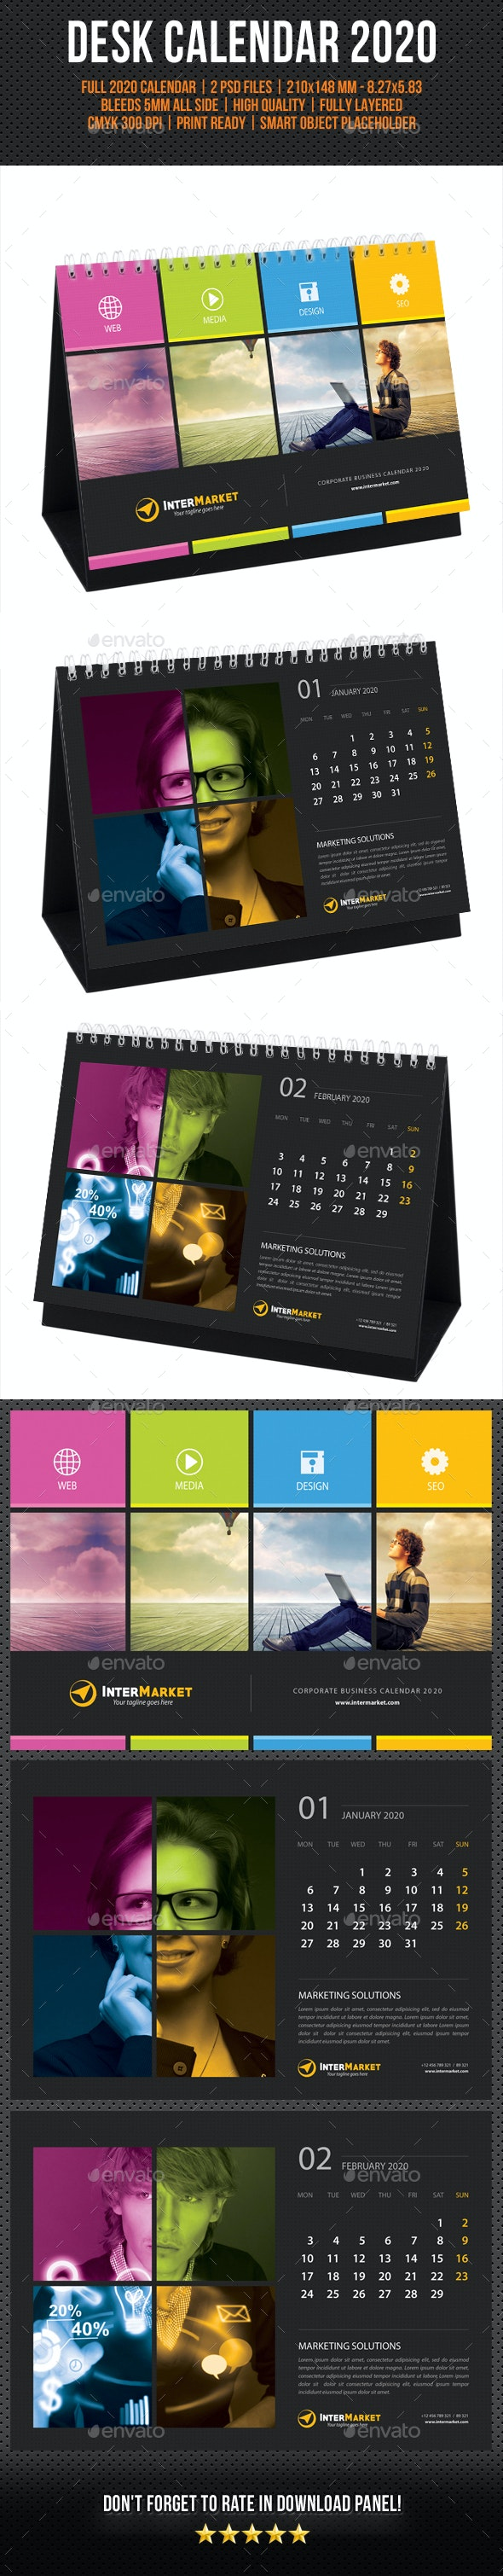 Corporate Desk Calendar 2020 V03 - Calendars Stationery